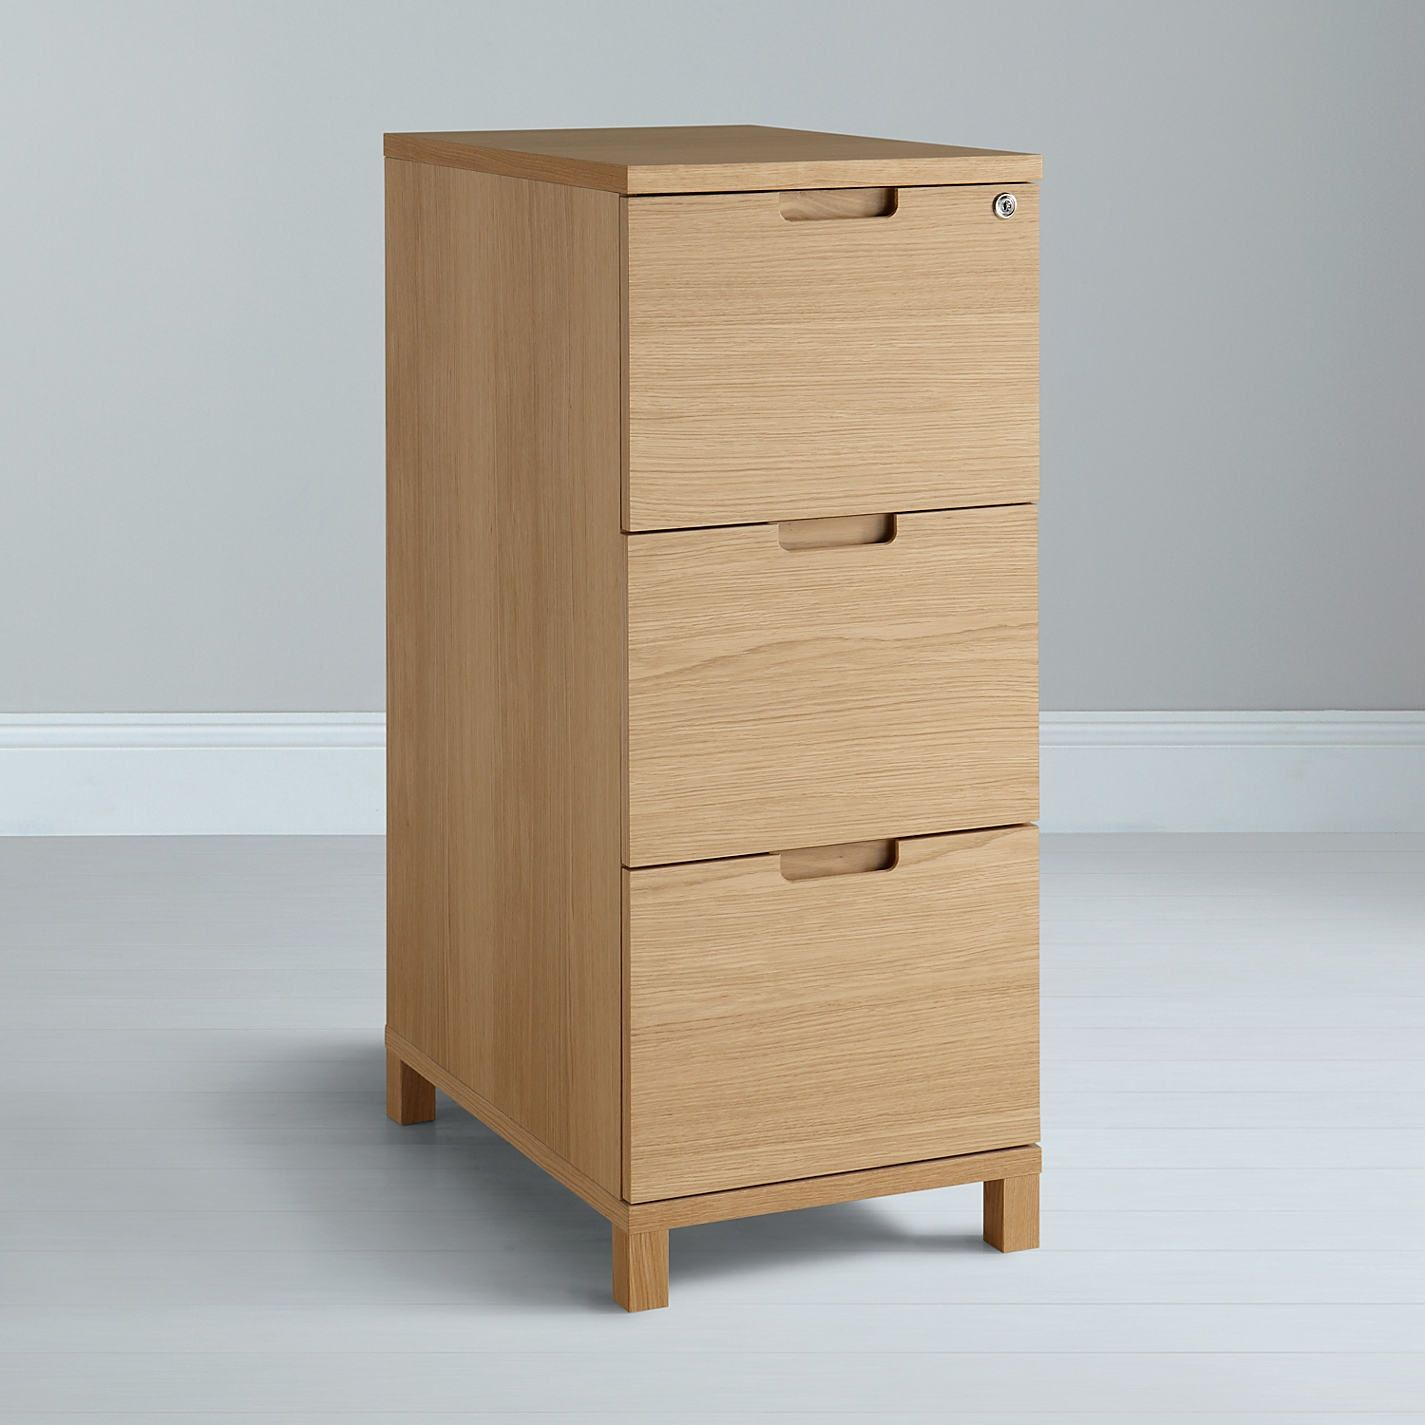 kitchen beech dams dp uk drawer wooden office filing home wood co cabinet amazon